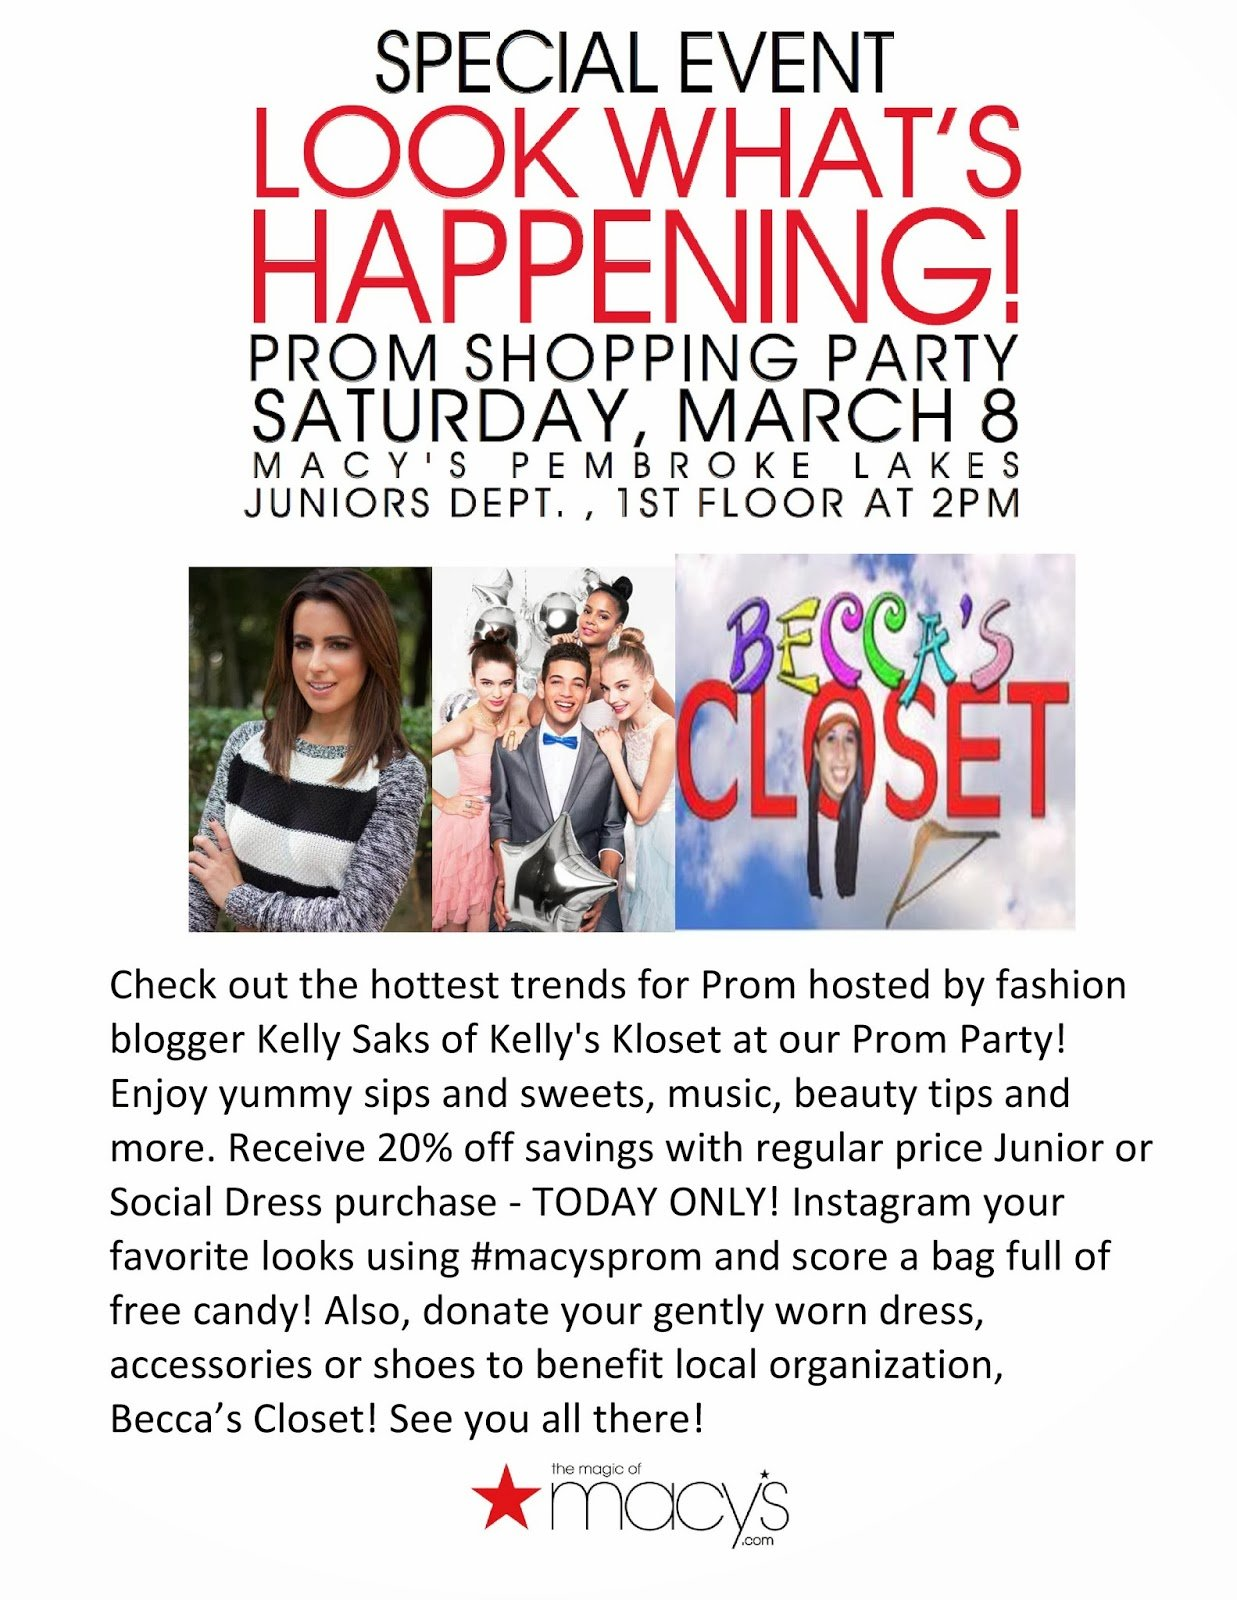 Celebrate Prom 2014 at Macy's Pembroke Lakes this Saturday